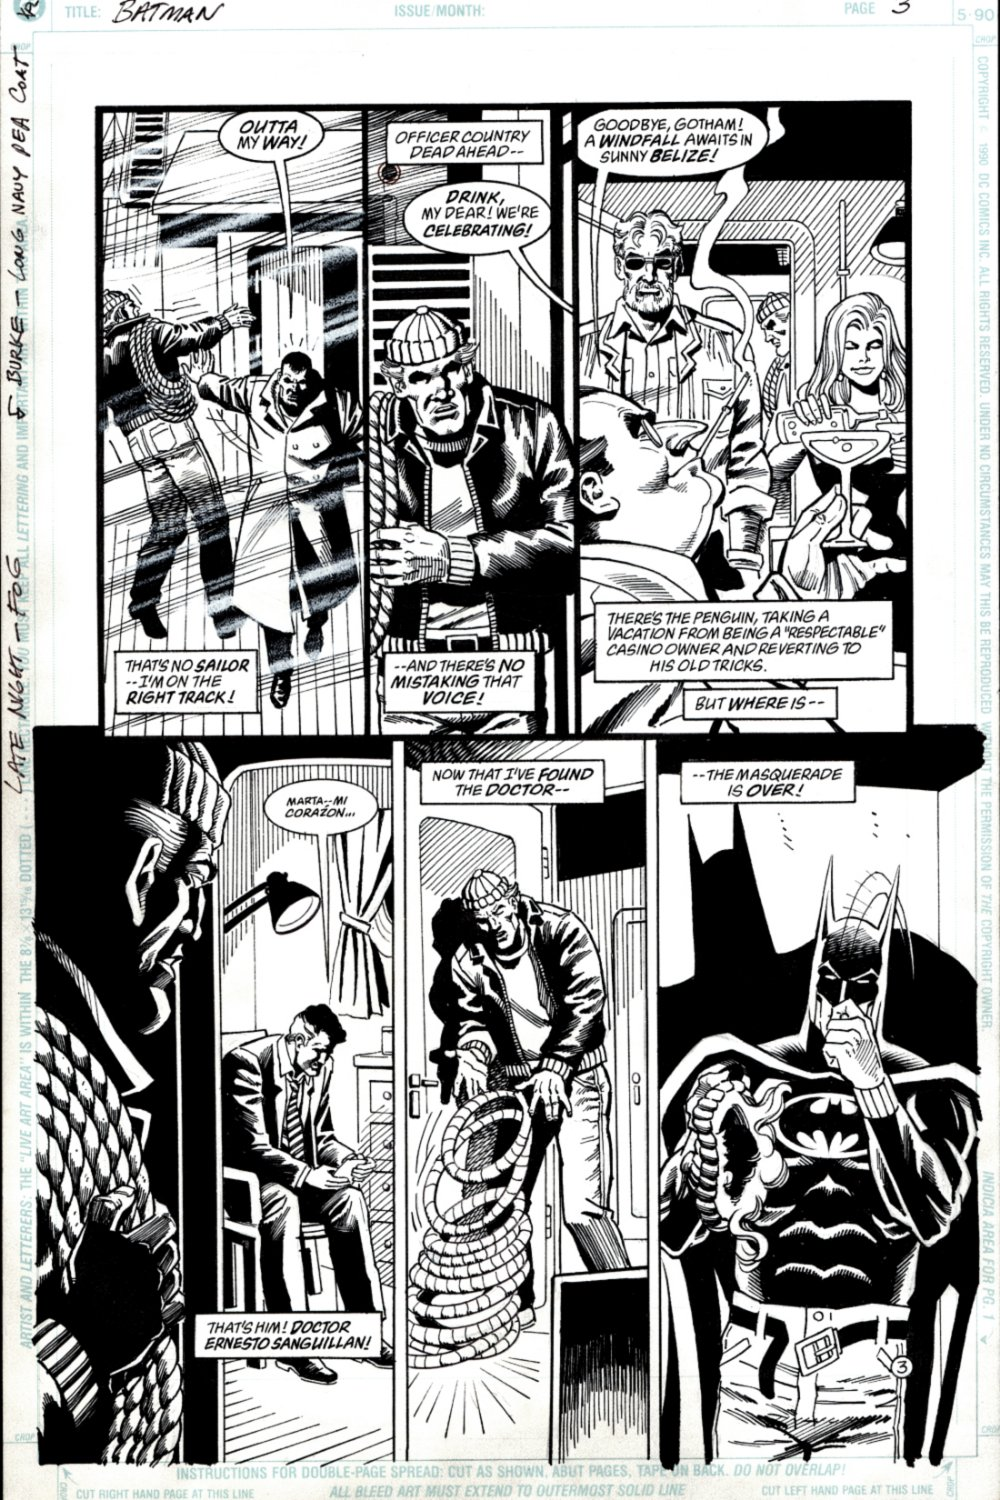 Batman #? p 3 1990 (SOLD LIVE ON 'DUELING DEALERS OF COMIC ART' EPISODE #39 PODCAST ON 10-4-2021(RE-WATCH THIS FUNNY ART SELLING SHOW HERE)